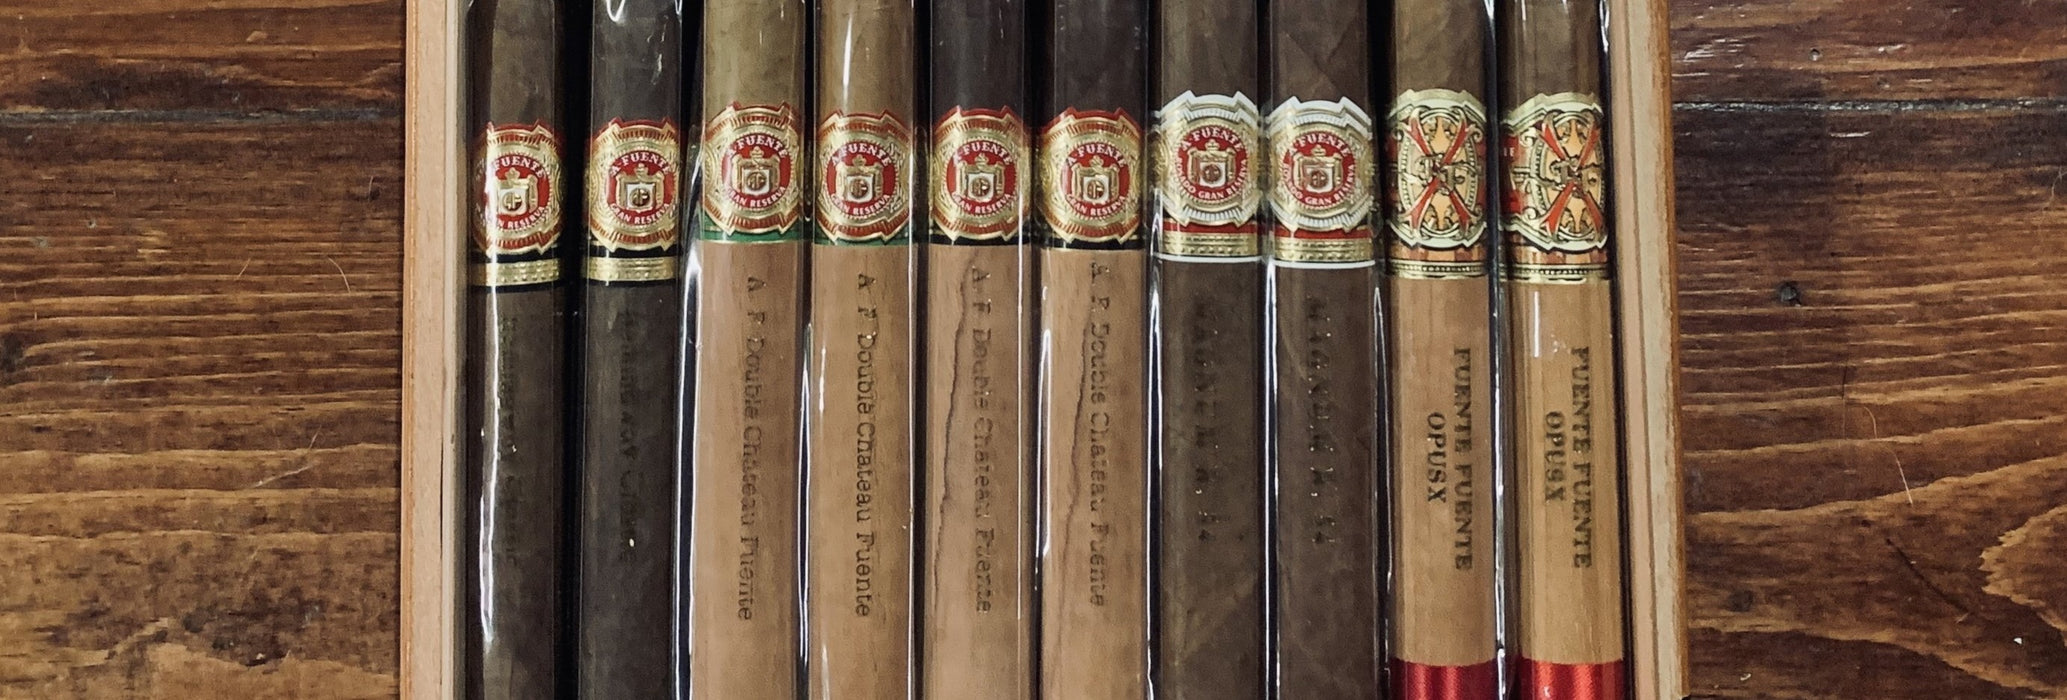 Arturo Fuente Extremely Rare Holiday Collection (10 pack)